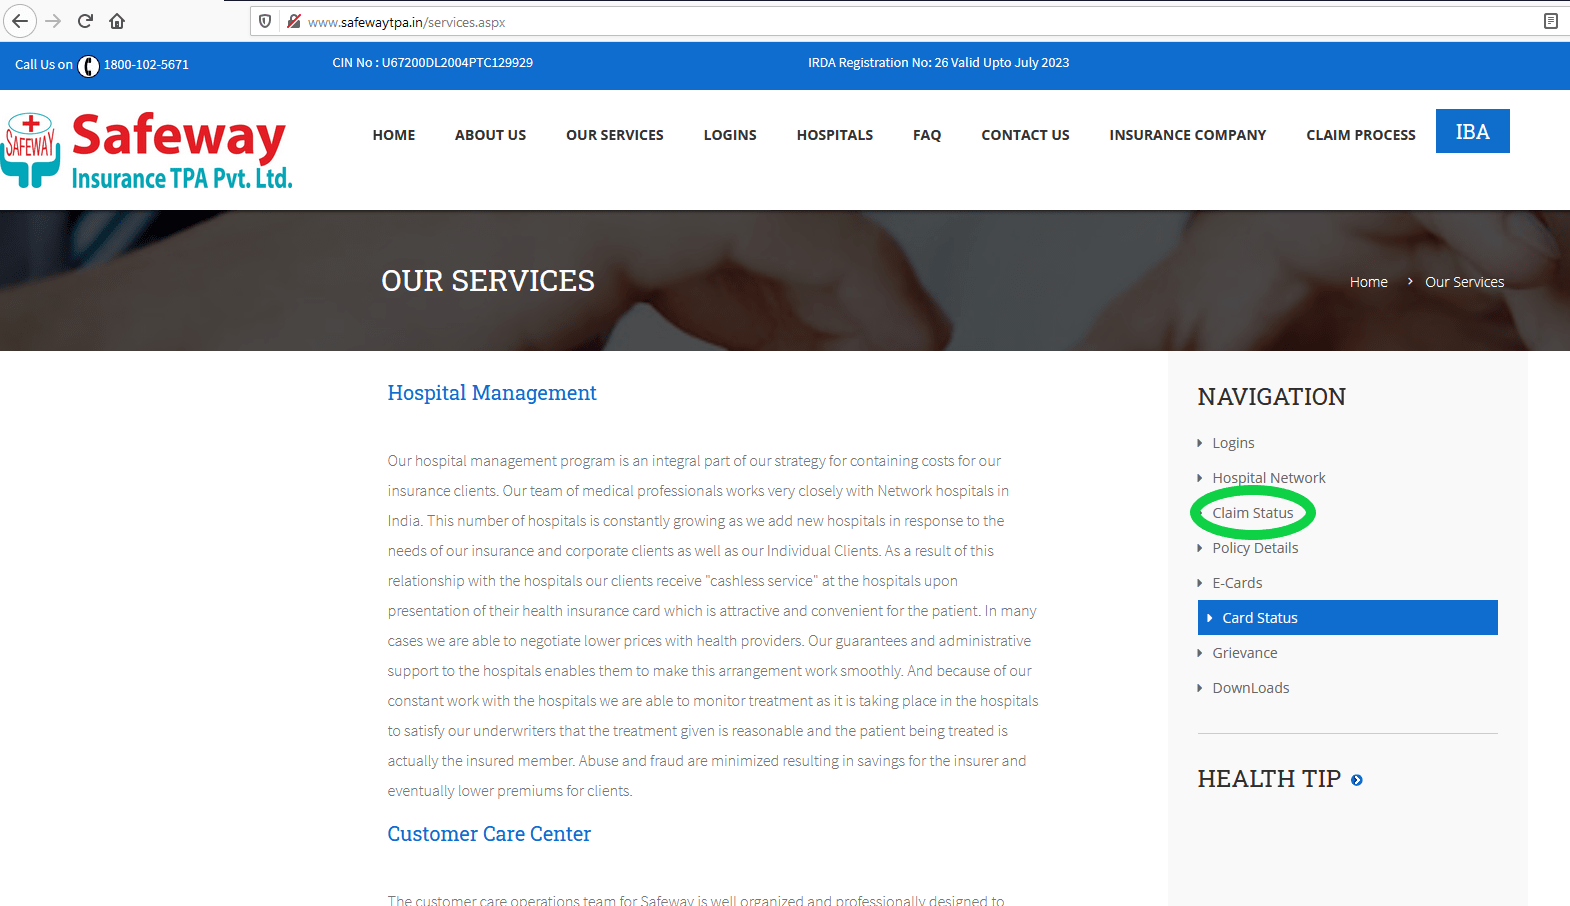 Safeway TPA services page